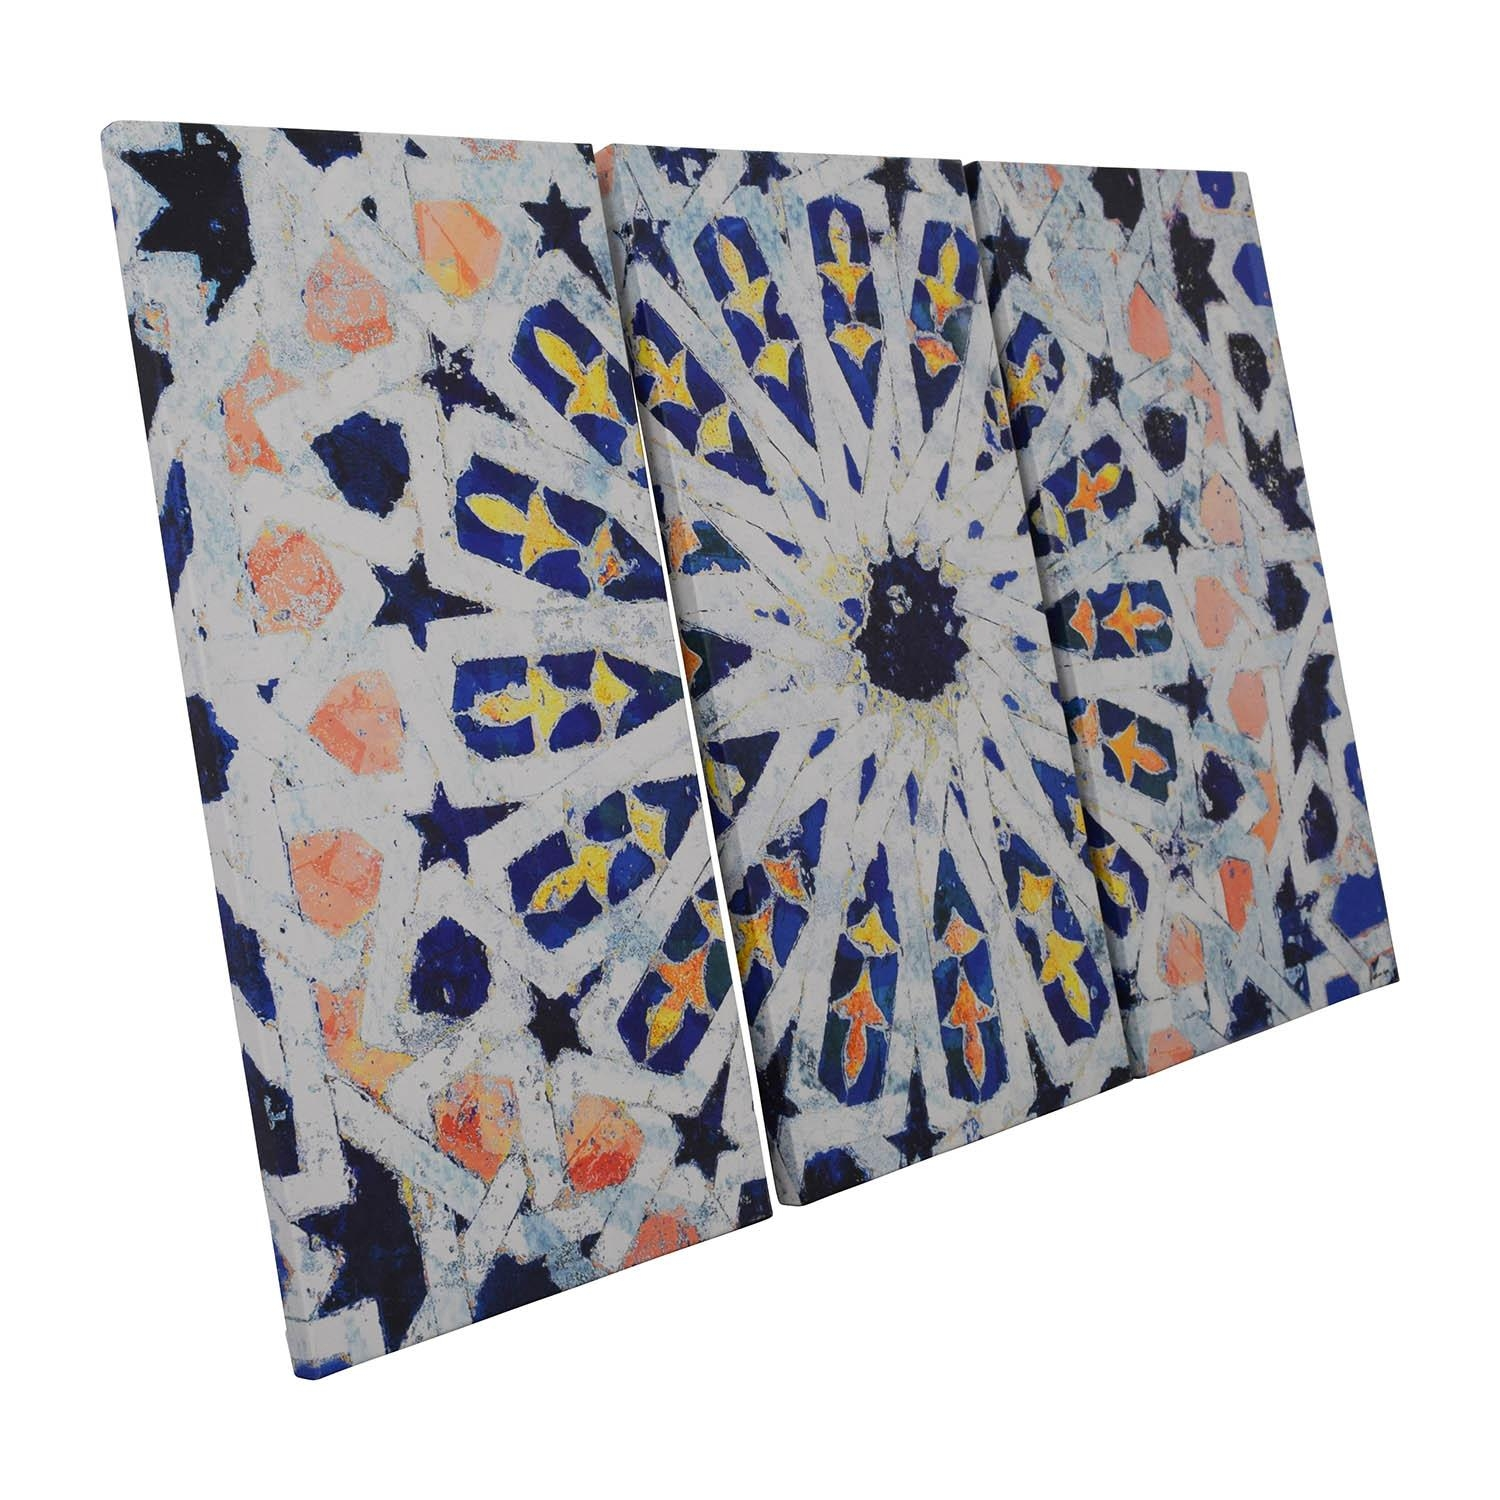 38% Off – Three Piece Kaleidoscope Wall Art / Decor Throughout Kaleidoscope Wall Art (View 5 of 20)